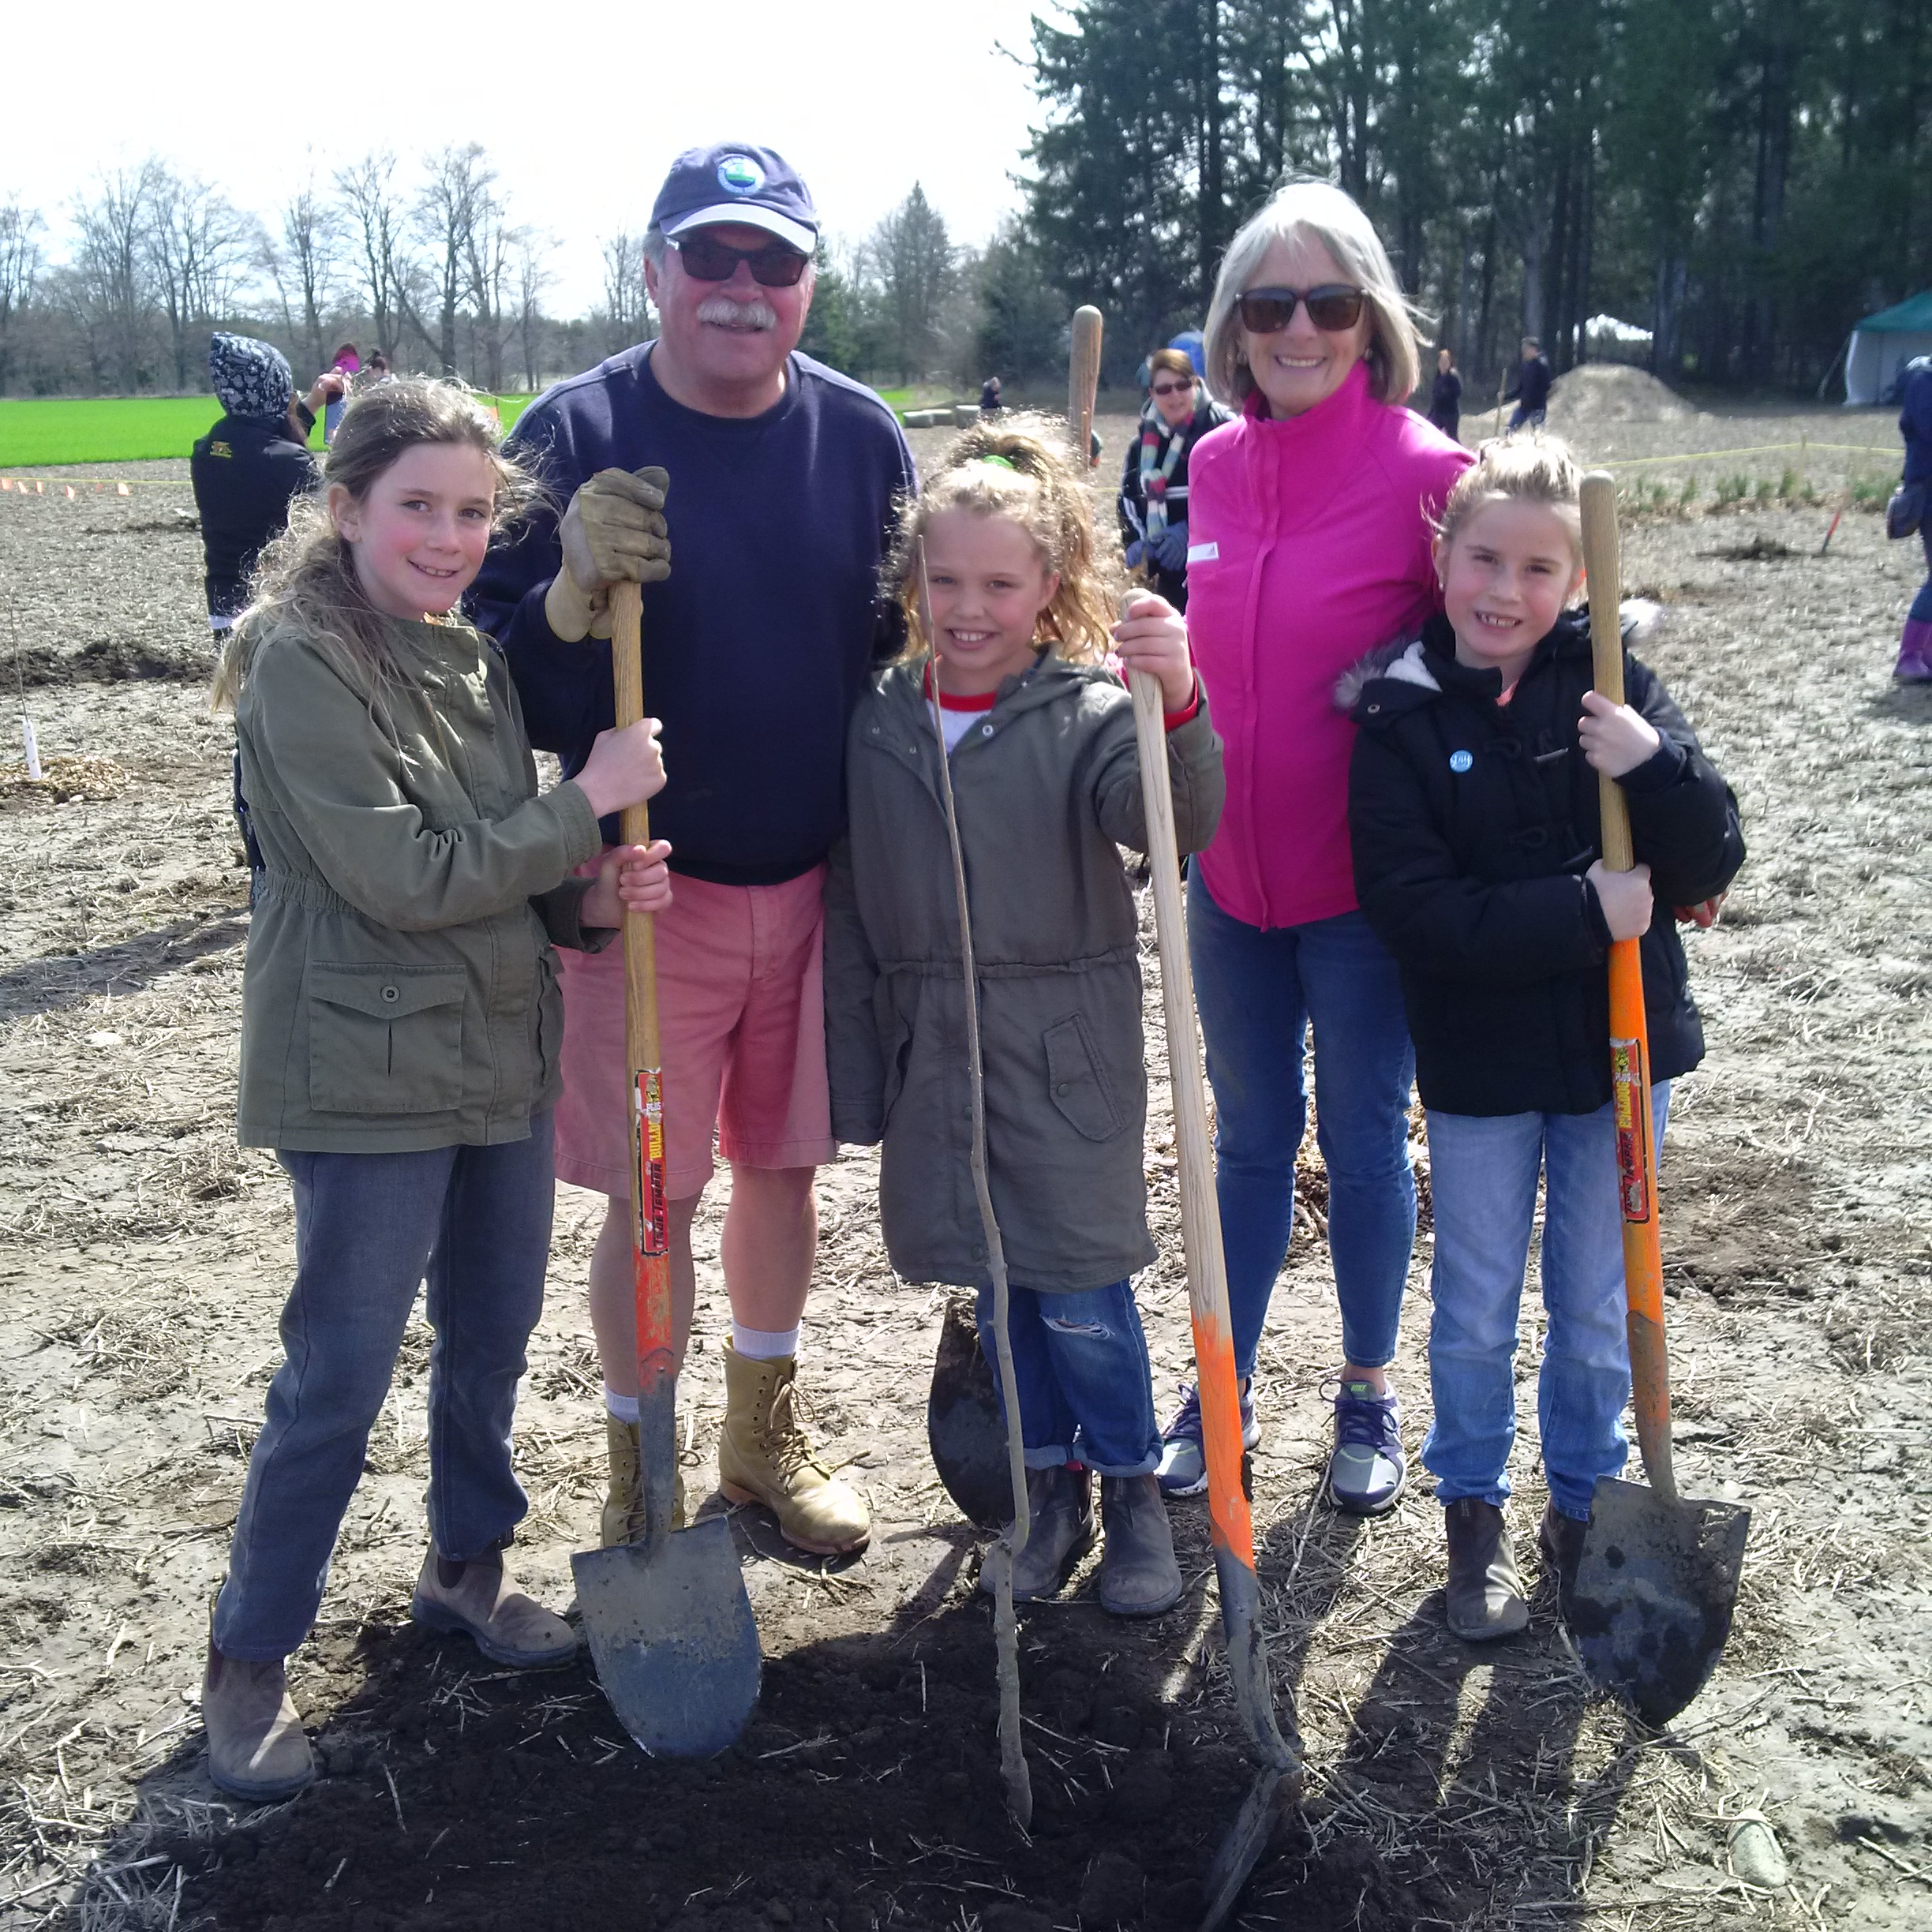 Copy of Sadie, Ava and Frankie - Tree Planting with Nanny and Pops, Rotary Forest